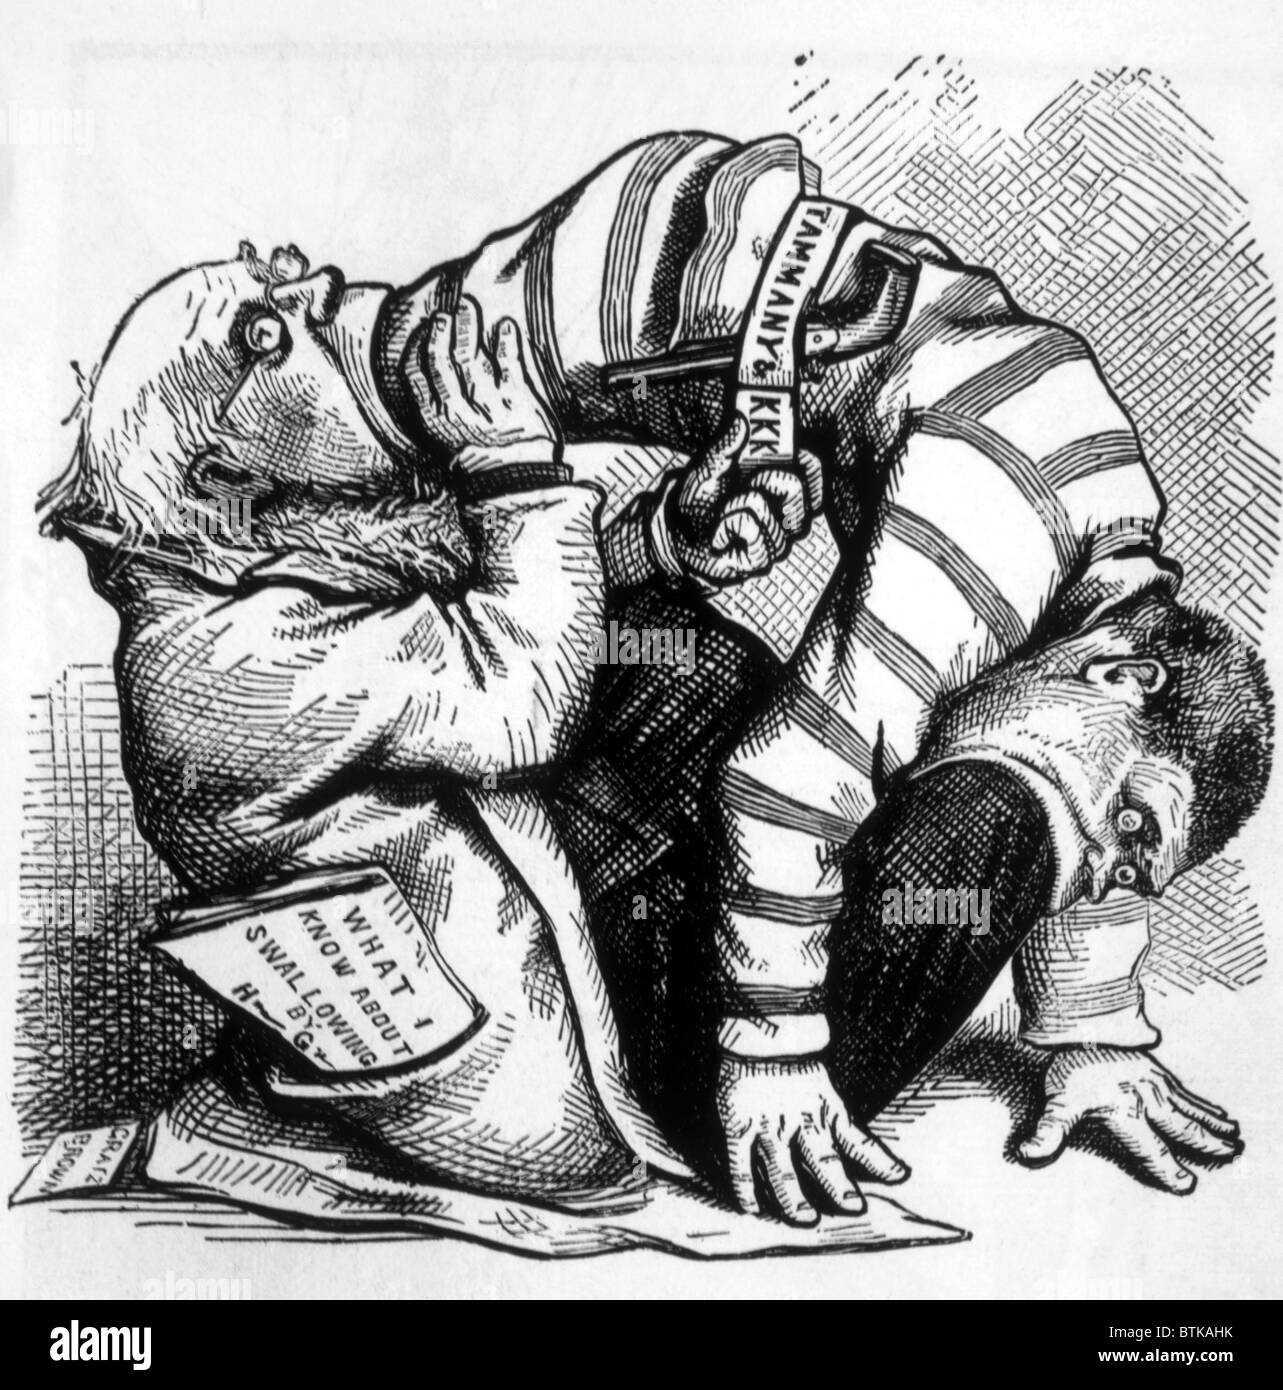 Thomas Nast Political Cartoon Depicting Democratic